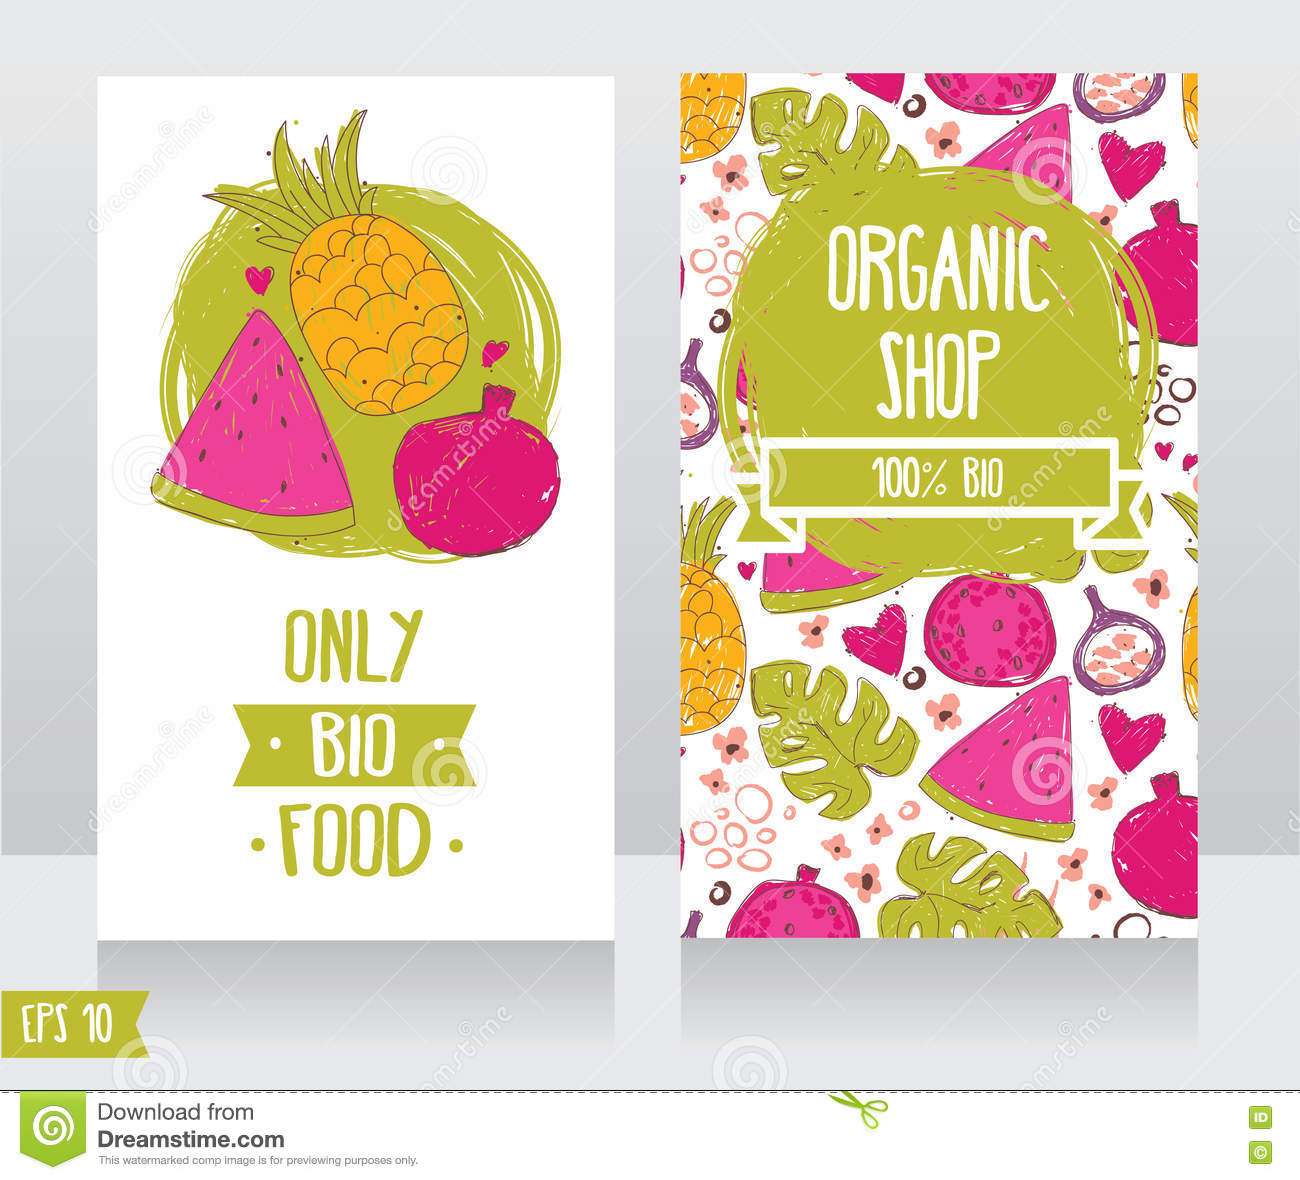 Business cards template for organic foods shop or vegan cafe stock download business cards template for organic foods shop or vegan cafe stock vector illustration of flashek Gallery